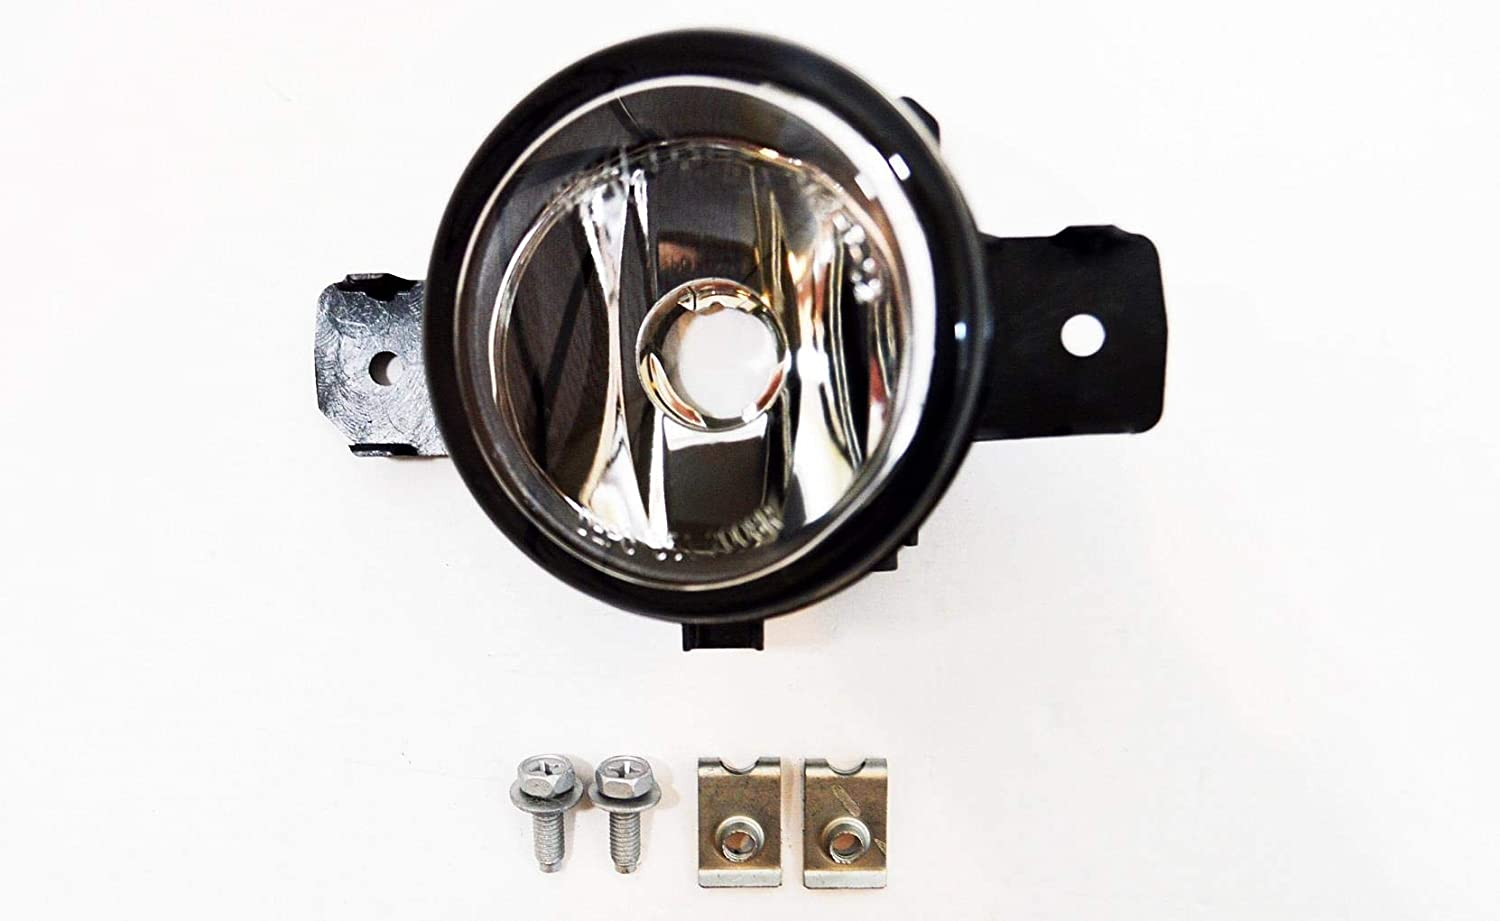 LSC TFL7006 Front RHS Fog Lamp NEW from LSC